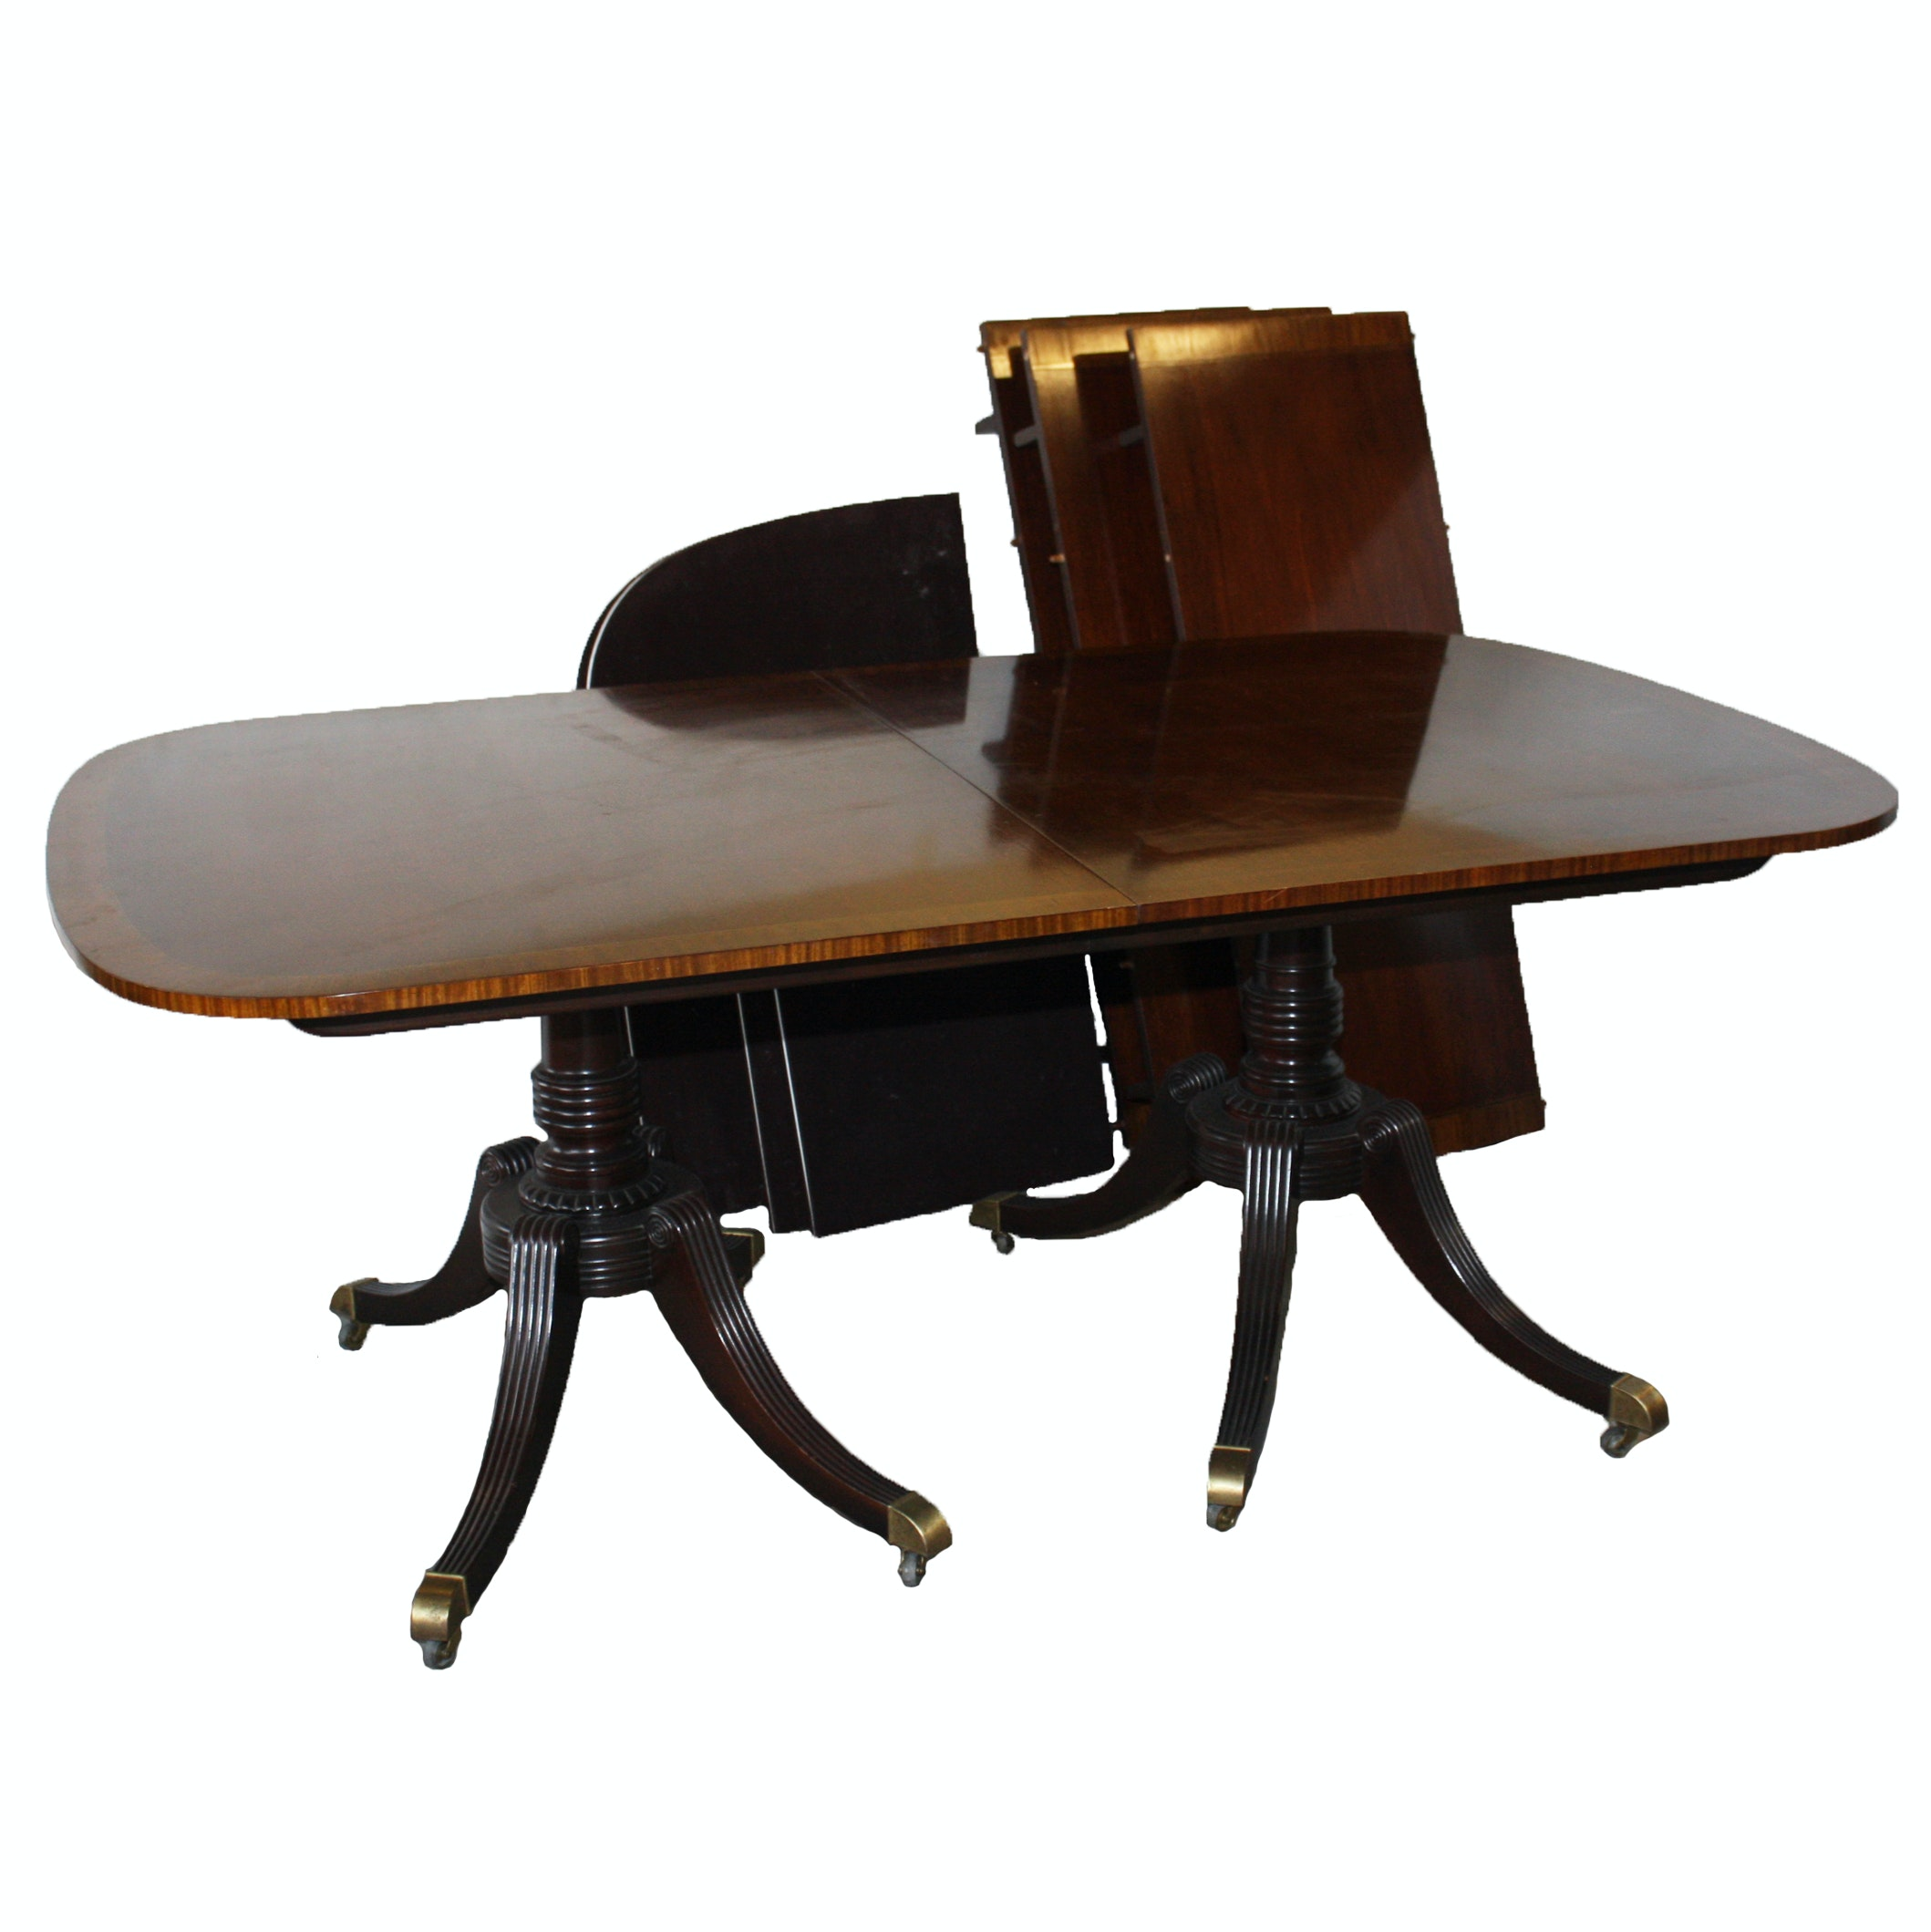 Baker Dining Table - Collector's Edition